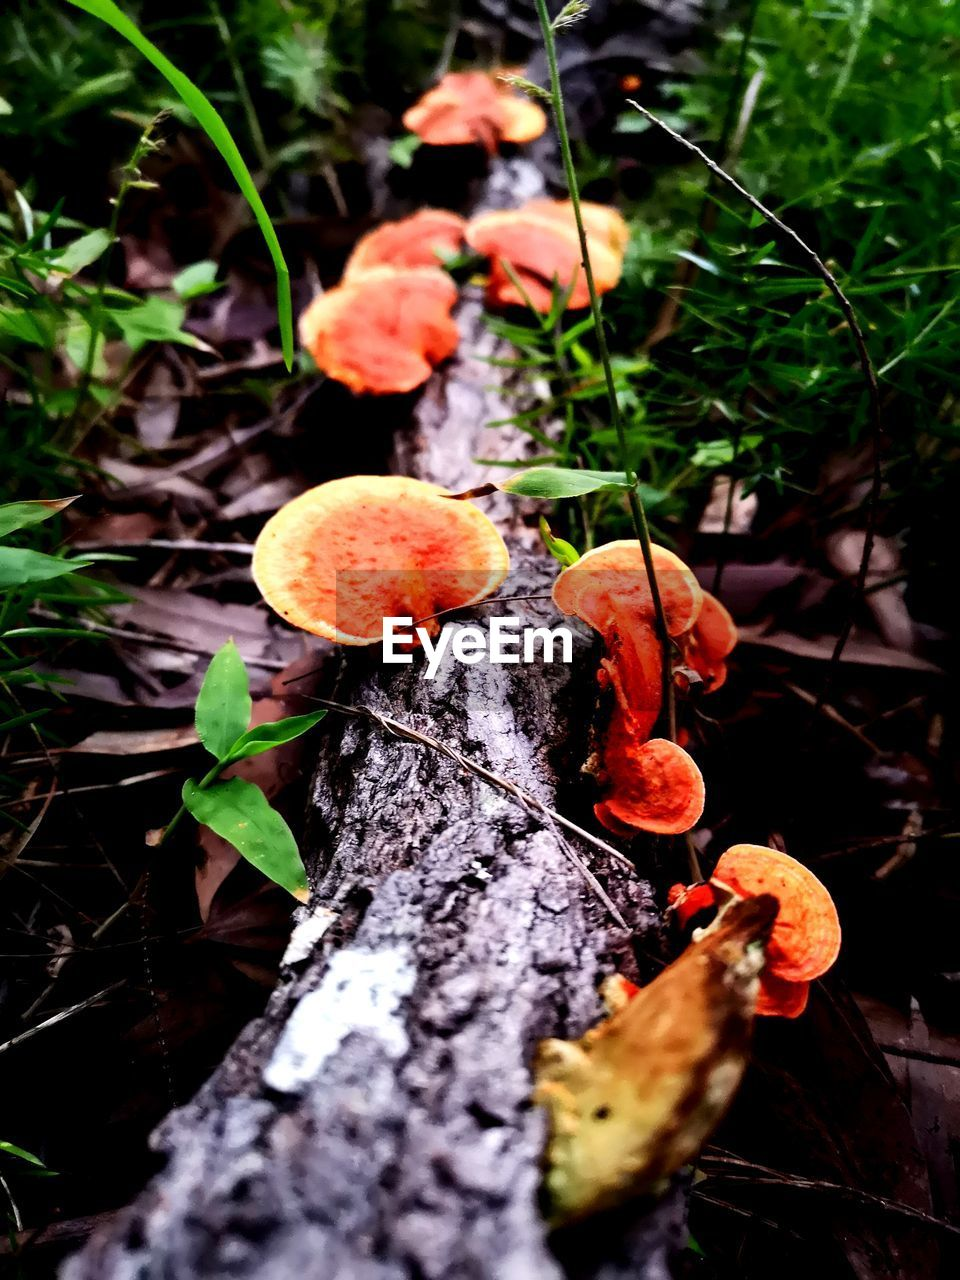 mushroom, plant, fungus, growth, nature, toadstool, land, close-up, no people, tree, beauty in nature, selective focus, day, food, forest, vegetable, edible mushroom, orange color, field, outdoors